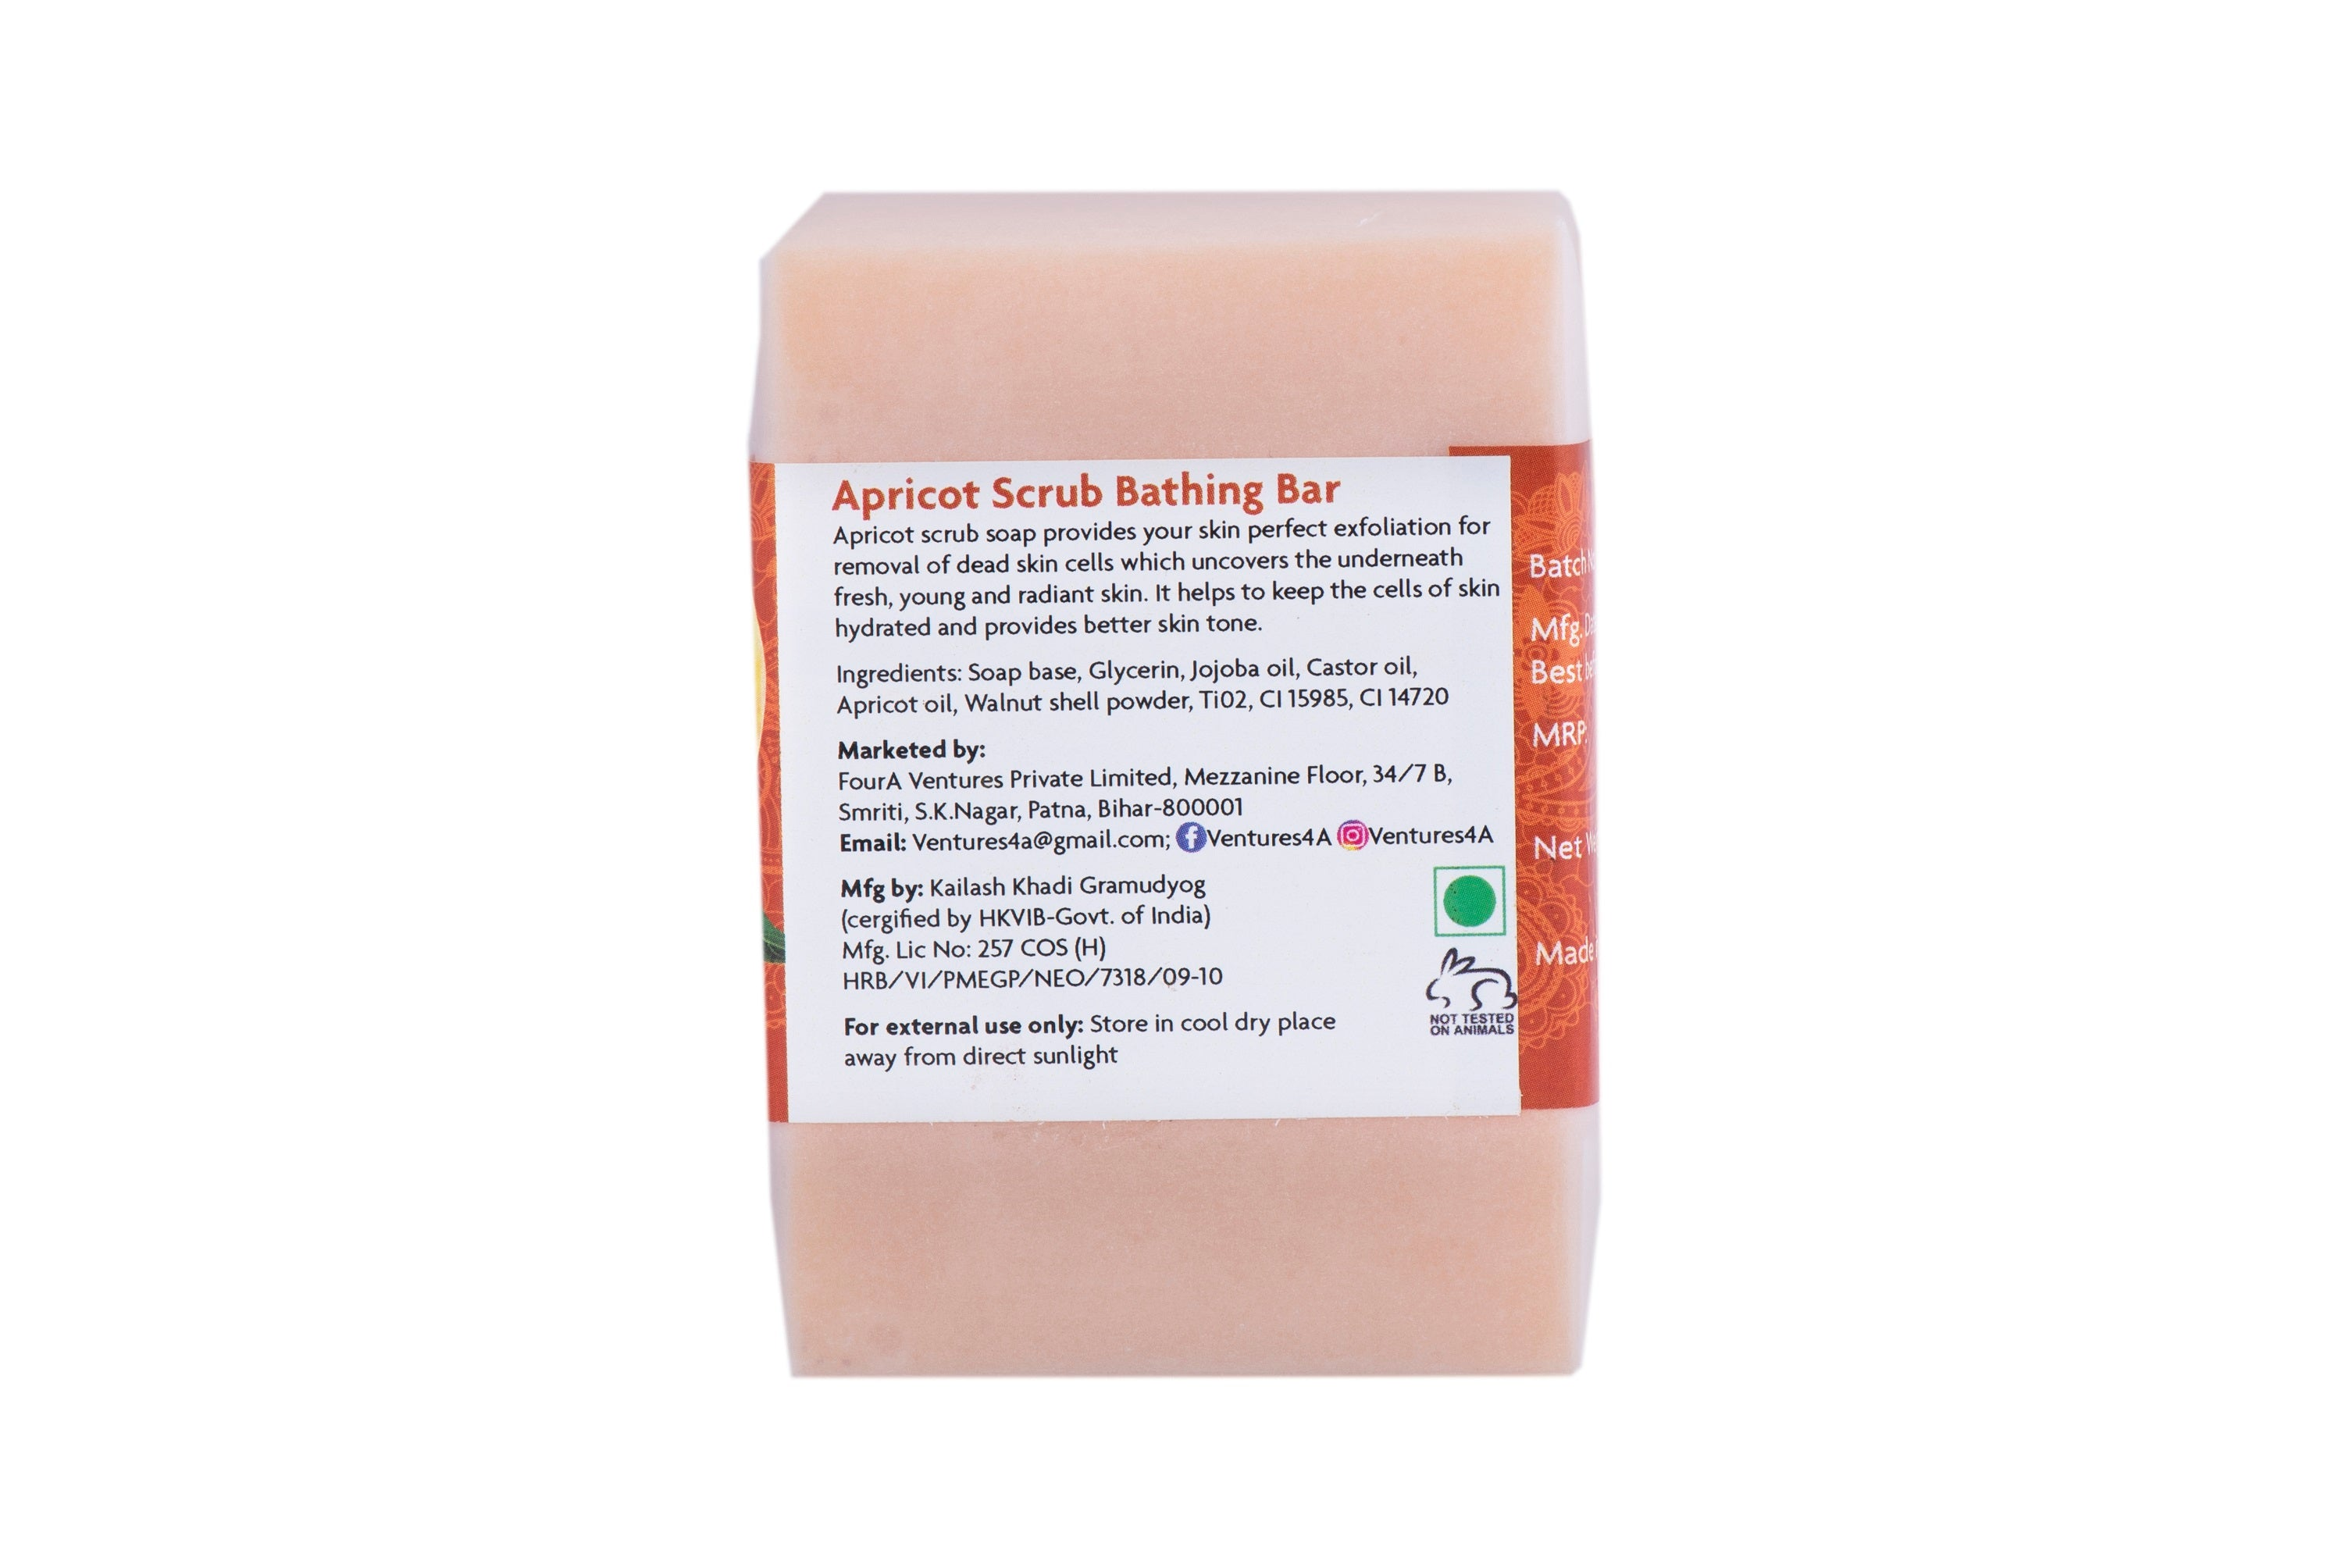 ANAYA Apricot Scrub Luxurious Handmade Bathing Bar with the Finest Ayurvedic Ingredients